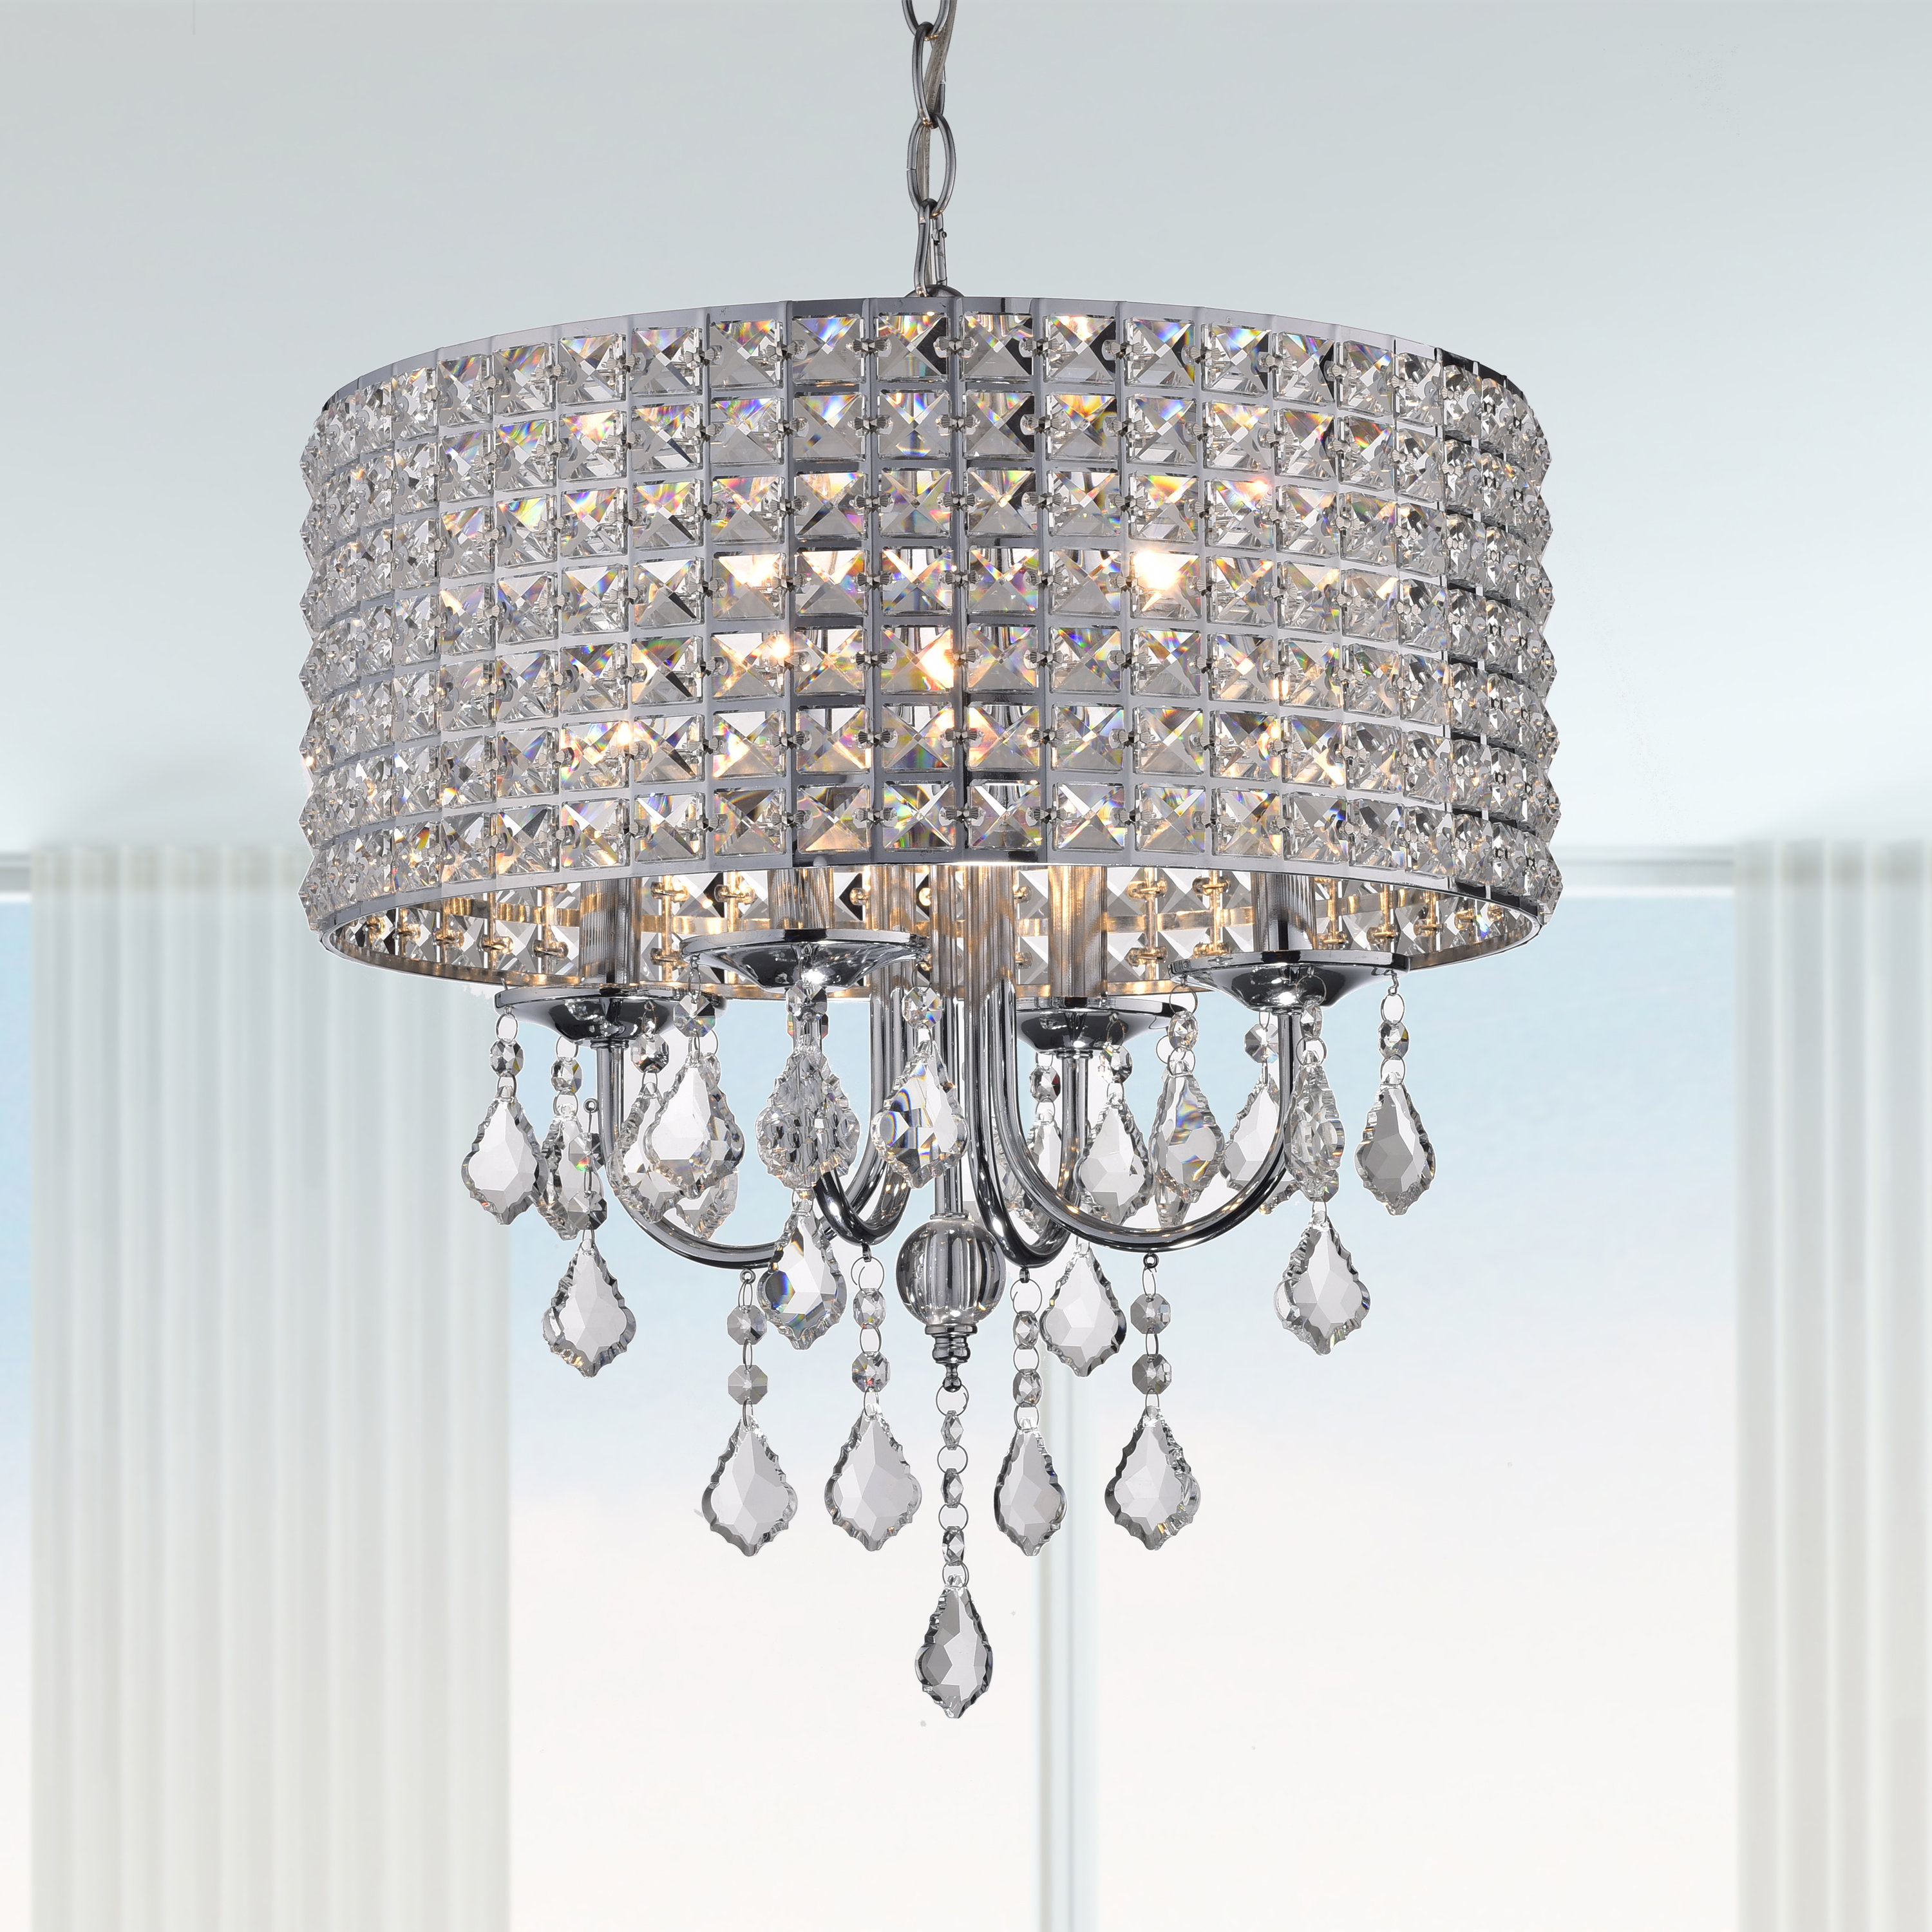 Aldgate 4 Light Crystal Chandeliers Within Latest Albano 4 Light Crystal Chandelier (View 7 of 20)